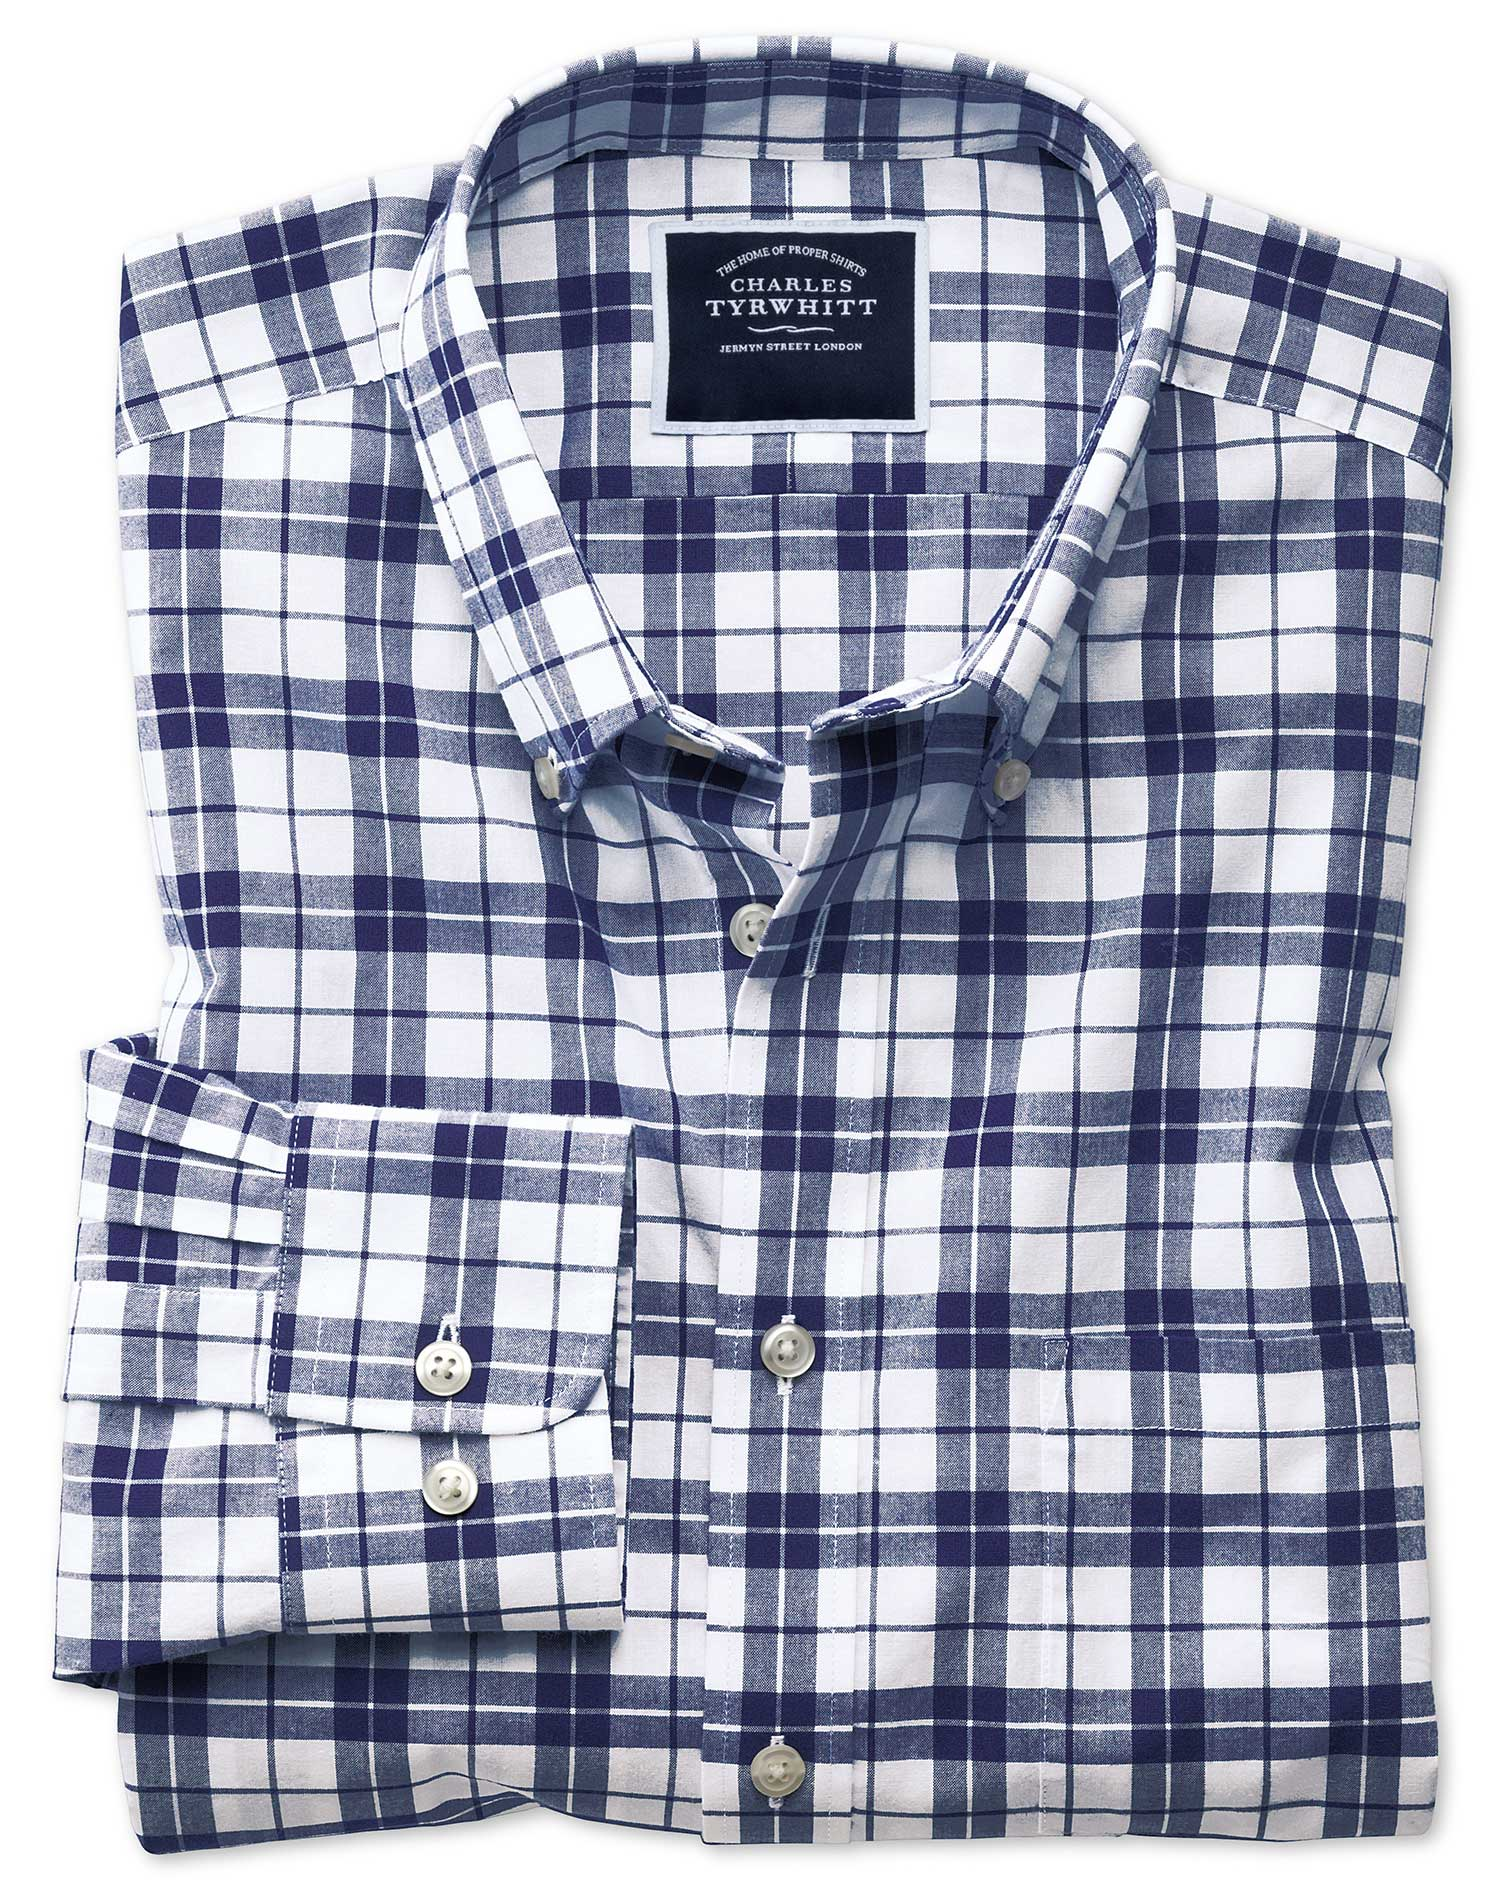 Classic Fit Poplin Navy and White Cotton Shirt Single Cuff Size Medium by Charles Tyrwhitt